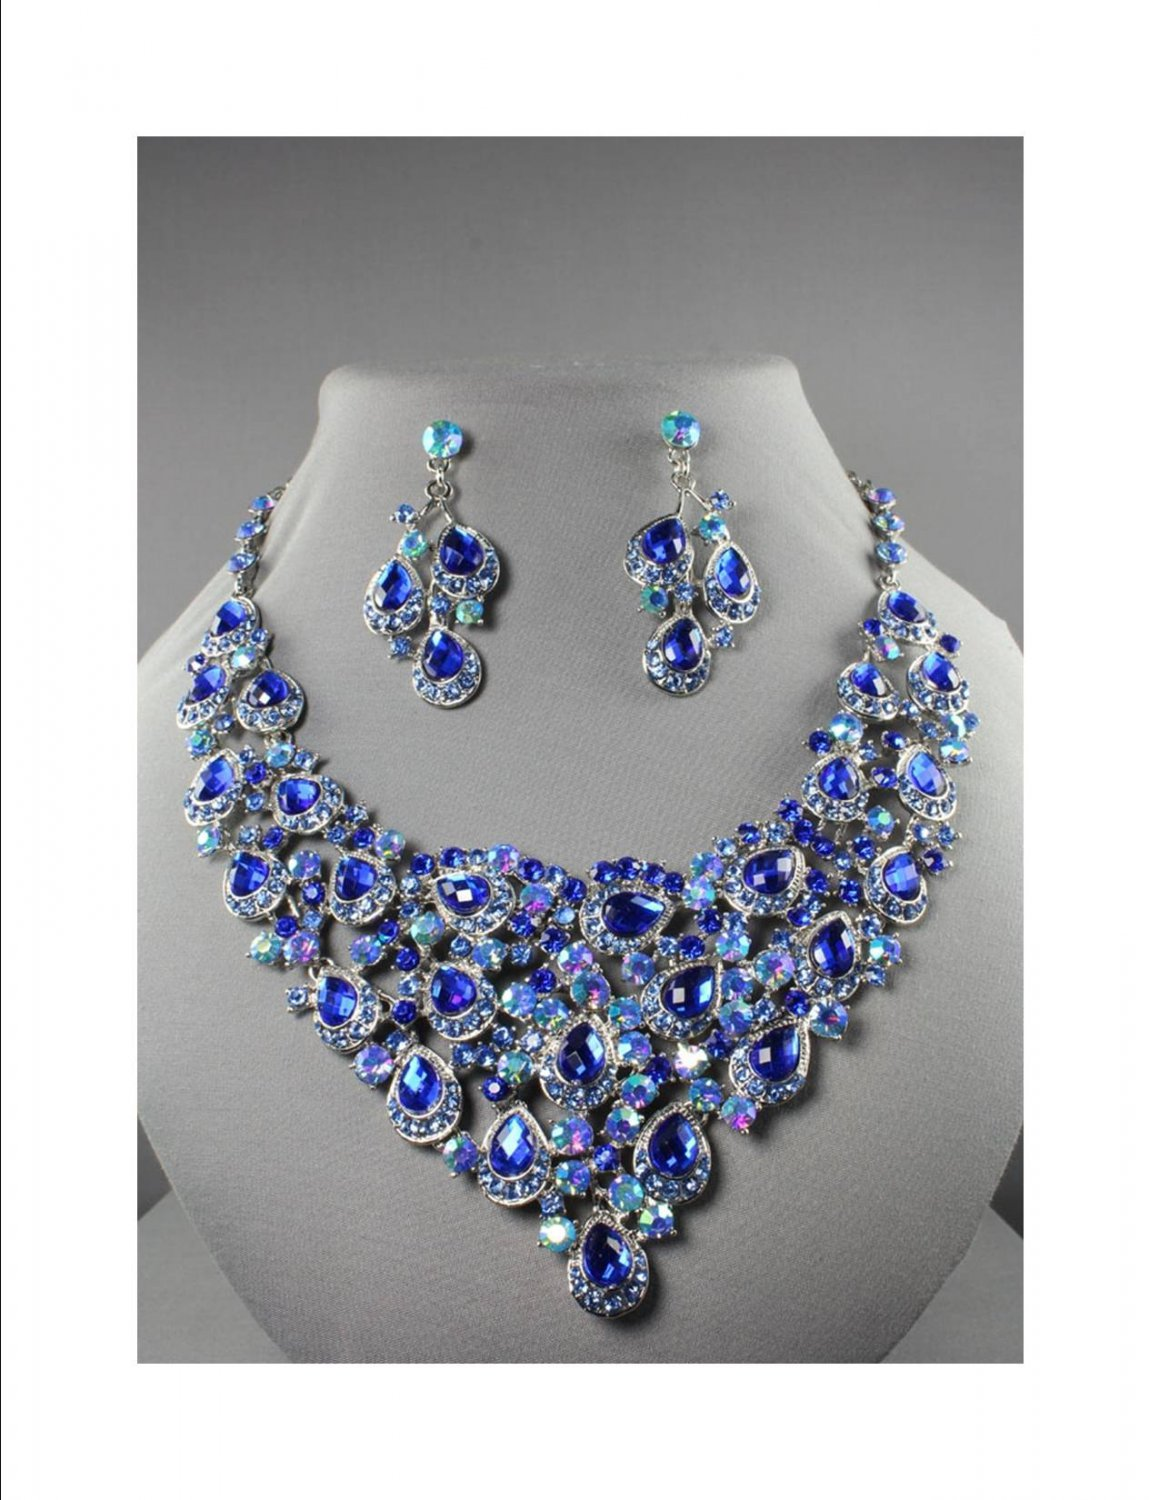 Chunky Royal Cobalt Blue Rhinestone Drag Queen Statement Bib Necklace Bridal Prom Pageant